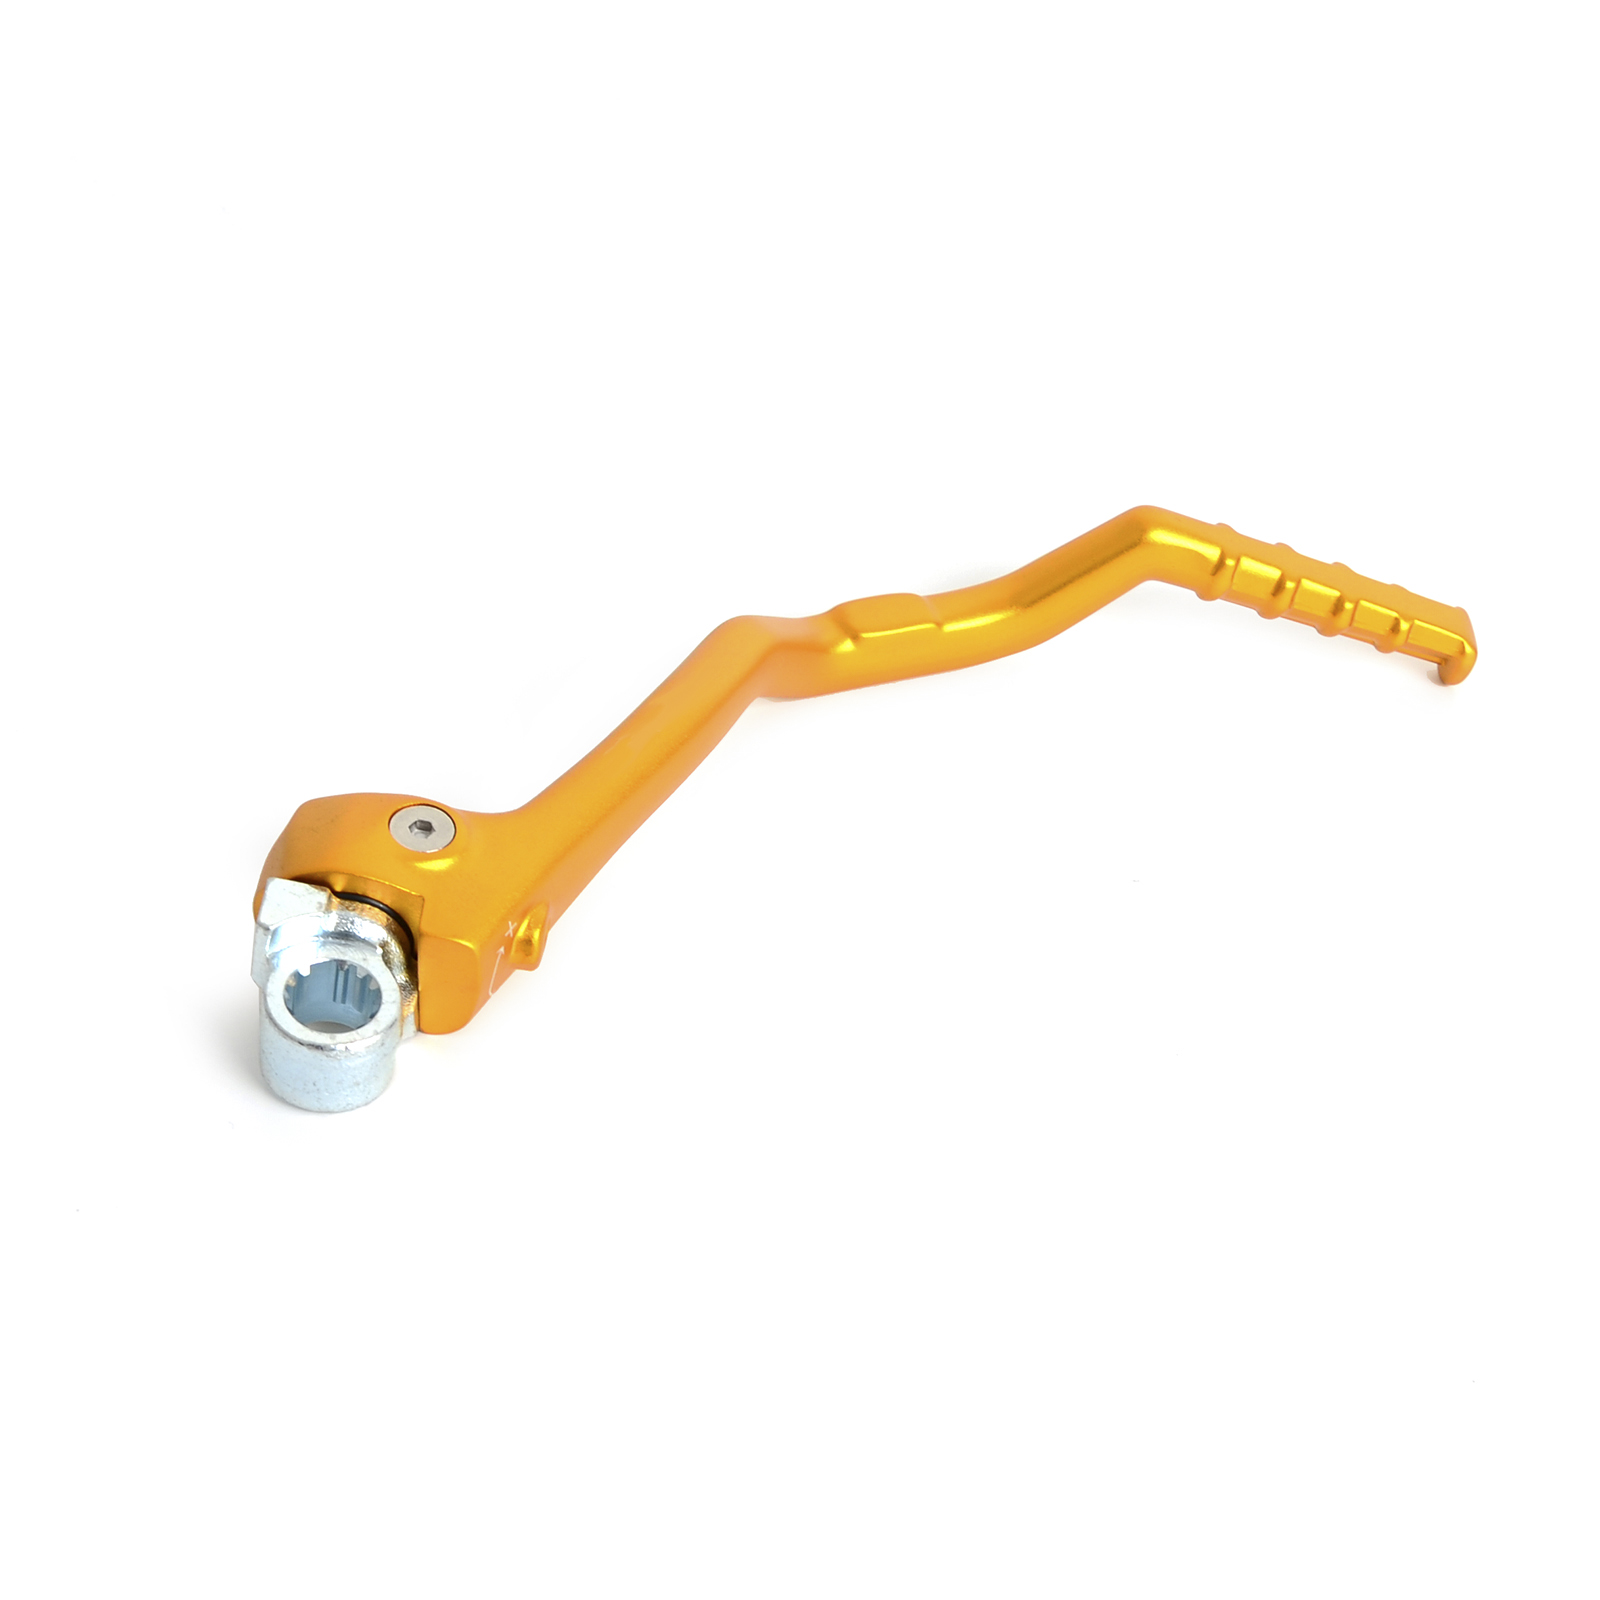 Motorcycle Forged Kick Start Starter Lever Pedal For <font><b>Suzuki</b></font> <font><b>RM</b></font>-Z250 RMZ250 <font><b>RM</b></font>-Z RMZ <font><b>250</b></font> 2011 2012 2013 2014 2015 image